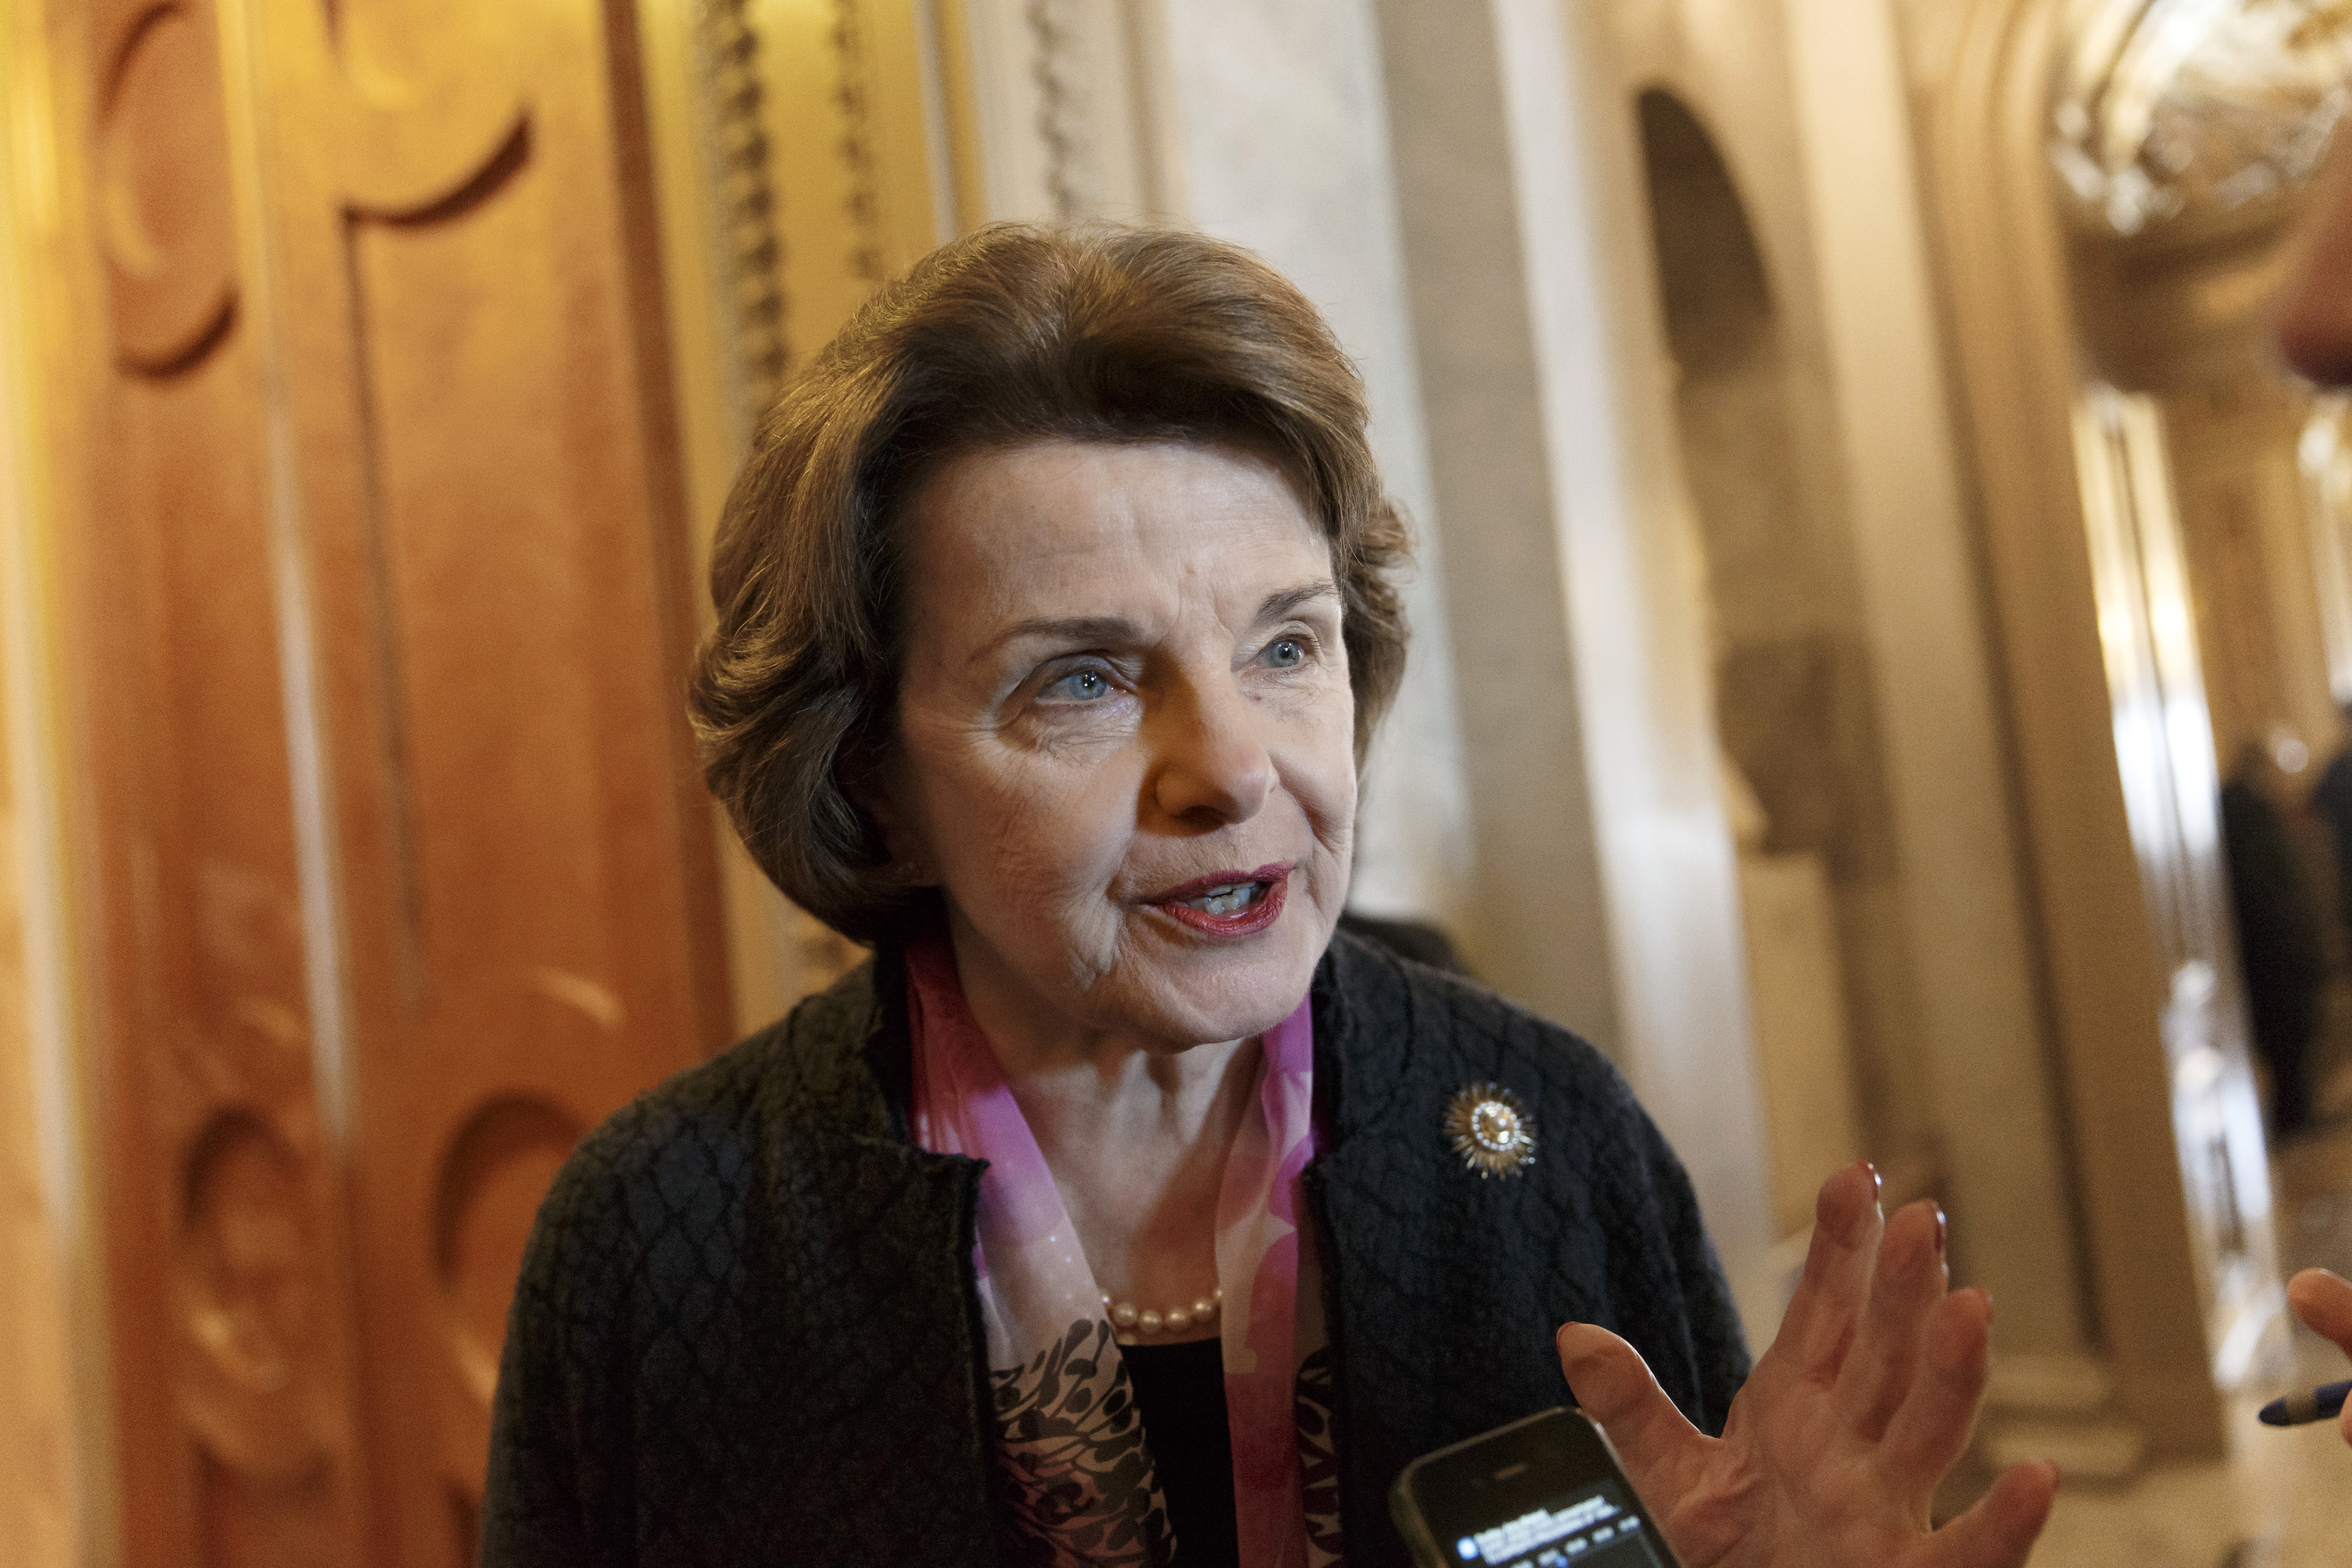 Senate Intelligence Committee chairwoman Dianne Feinstein arrives at the Senate chamber on Capitol Hill on March 27, 2014